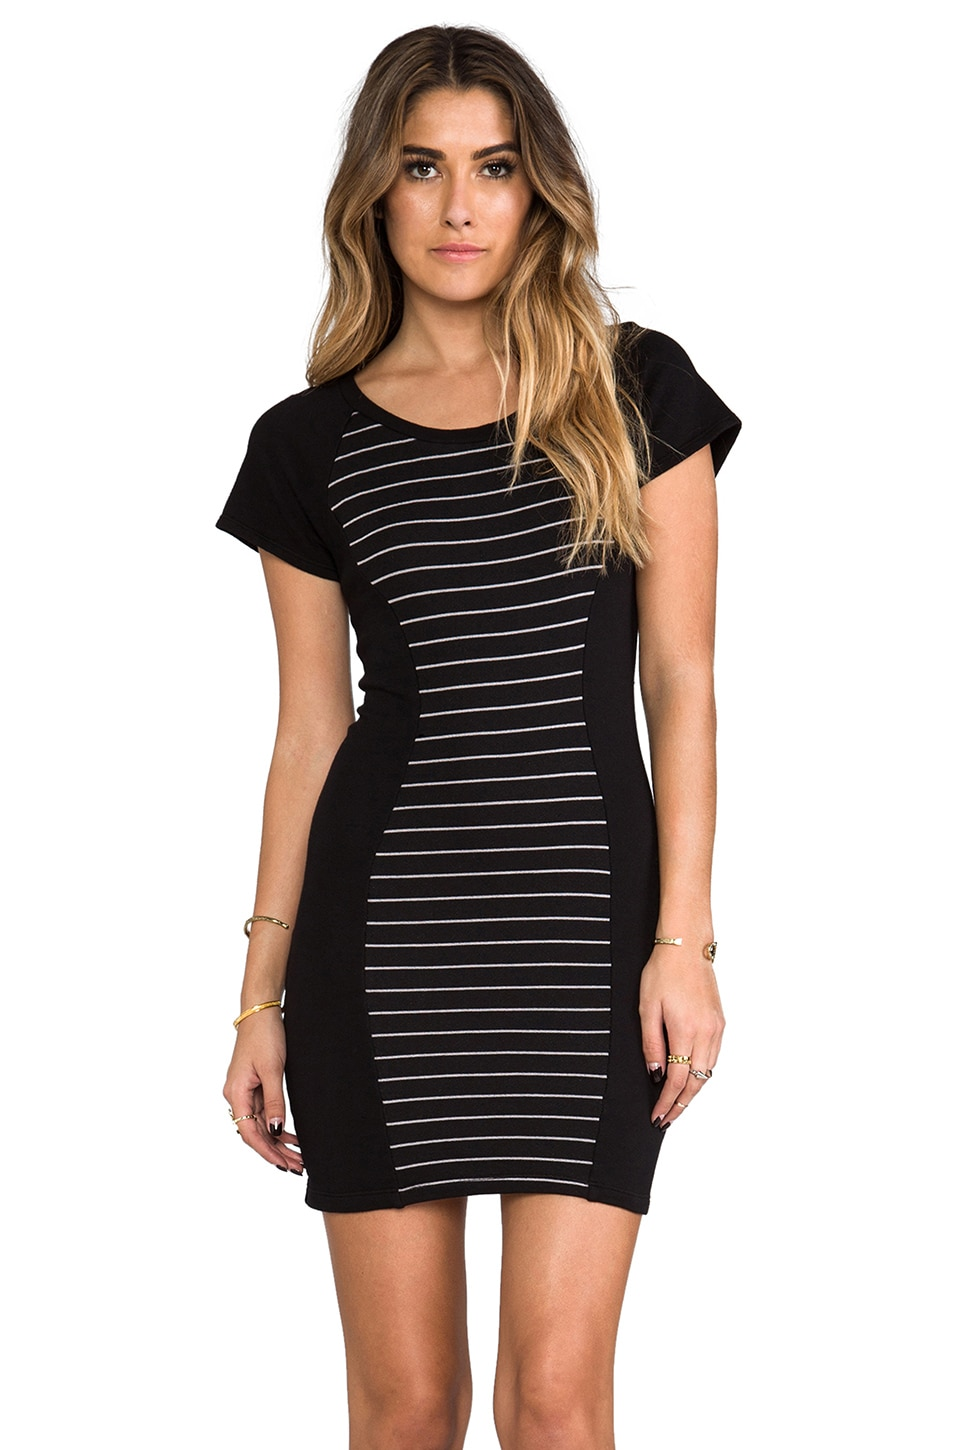 Kain Lively Dress in Black